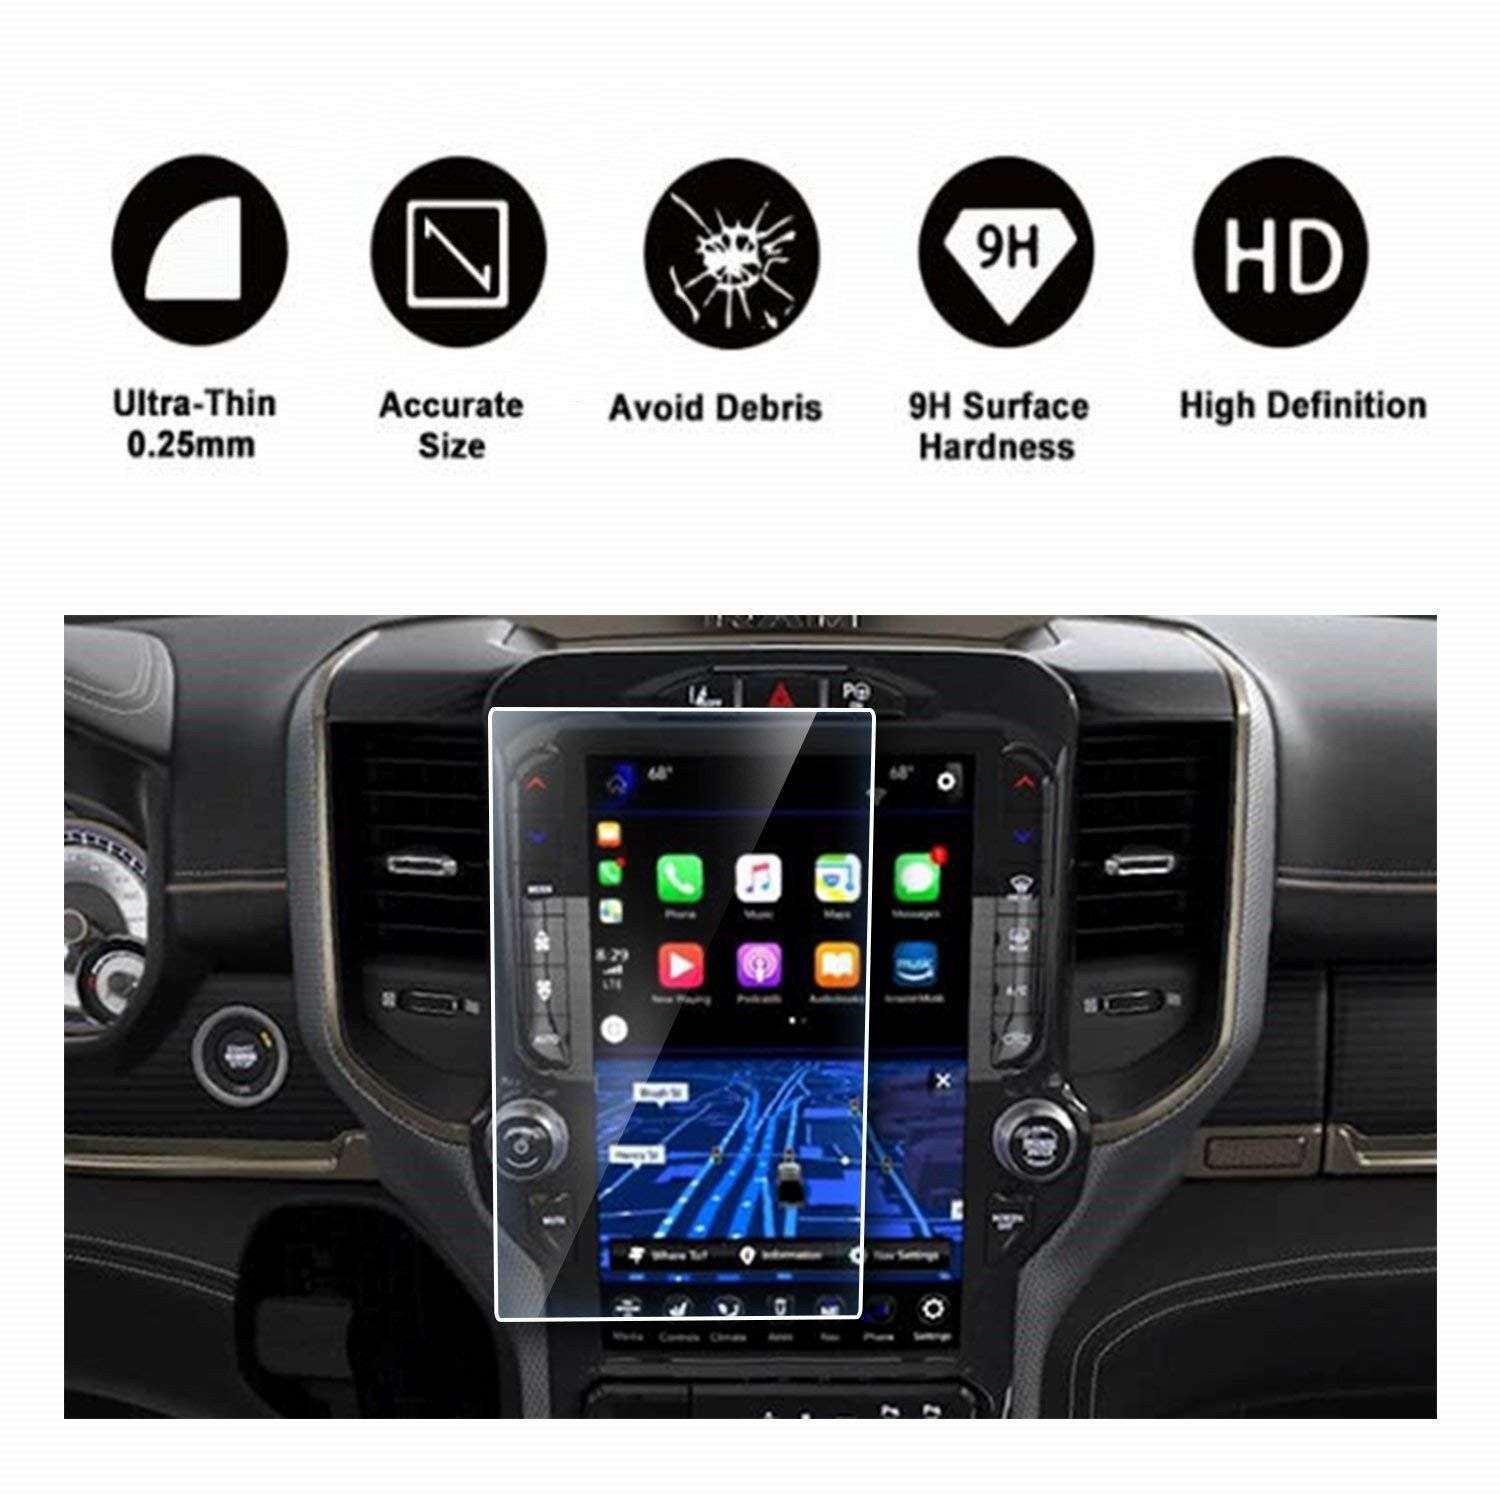 2019 Dodge Ram 1500 Uconnect Touchscreen Car Display Navigation Screen Protector Hd Clear Tempered Glass Protective Film Dodge Ram Navigation Dodge Trucks Ram